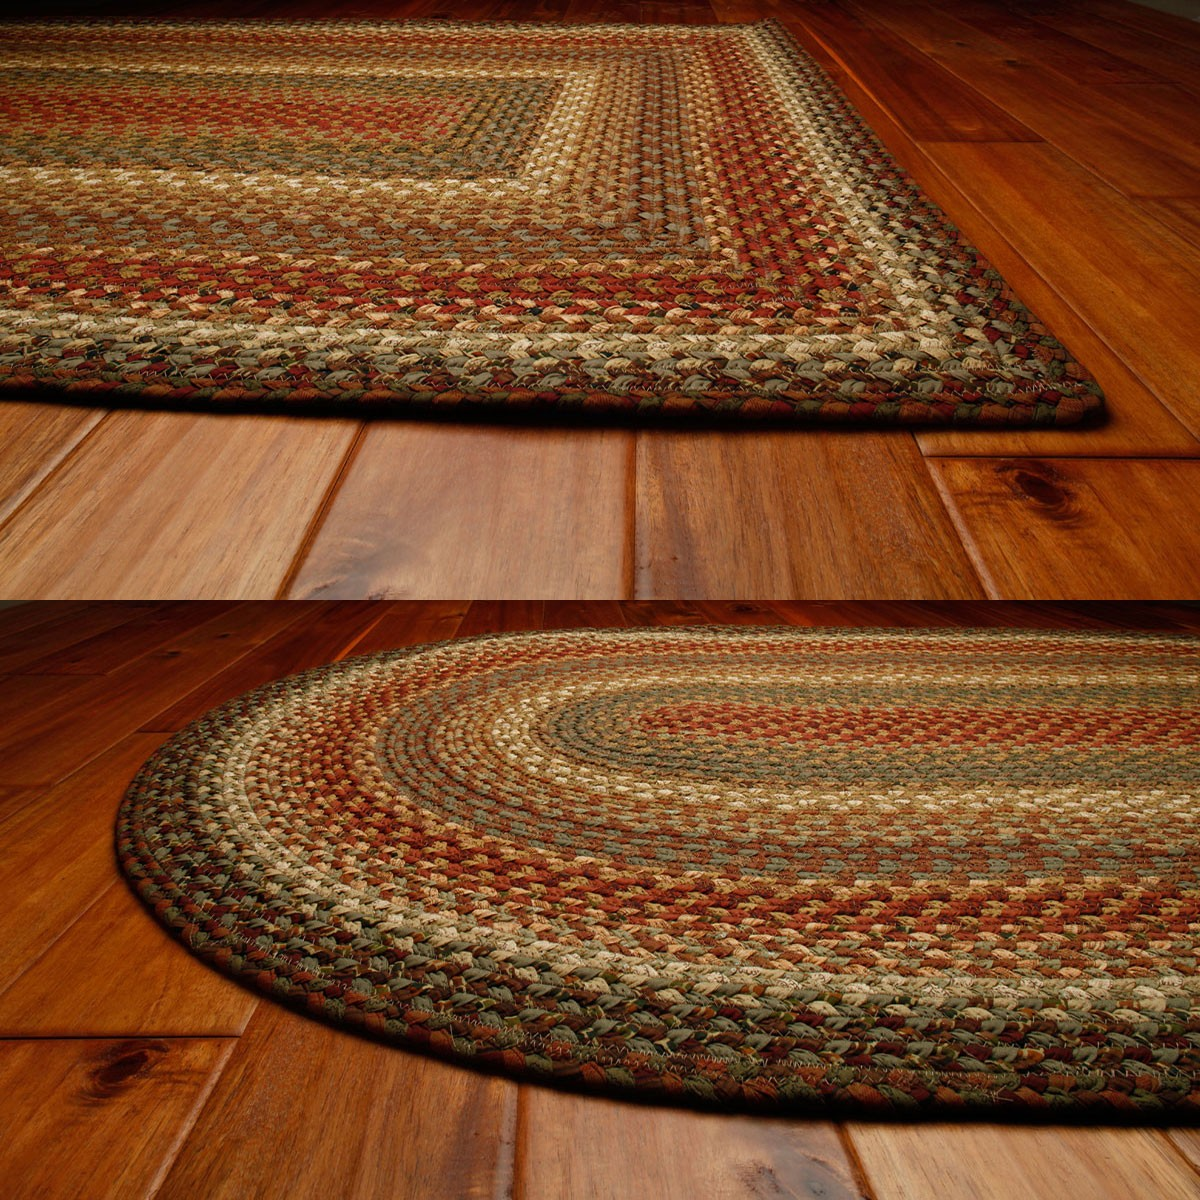 Brown And Orange braided Rugs in oval and rectangle shapes